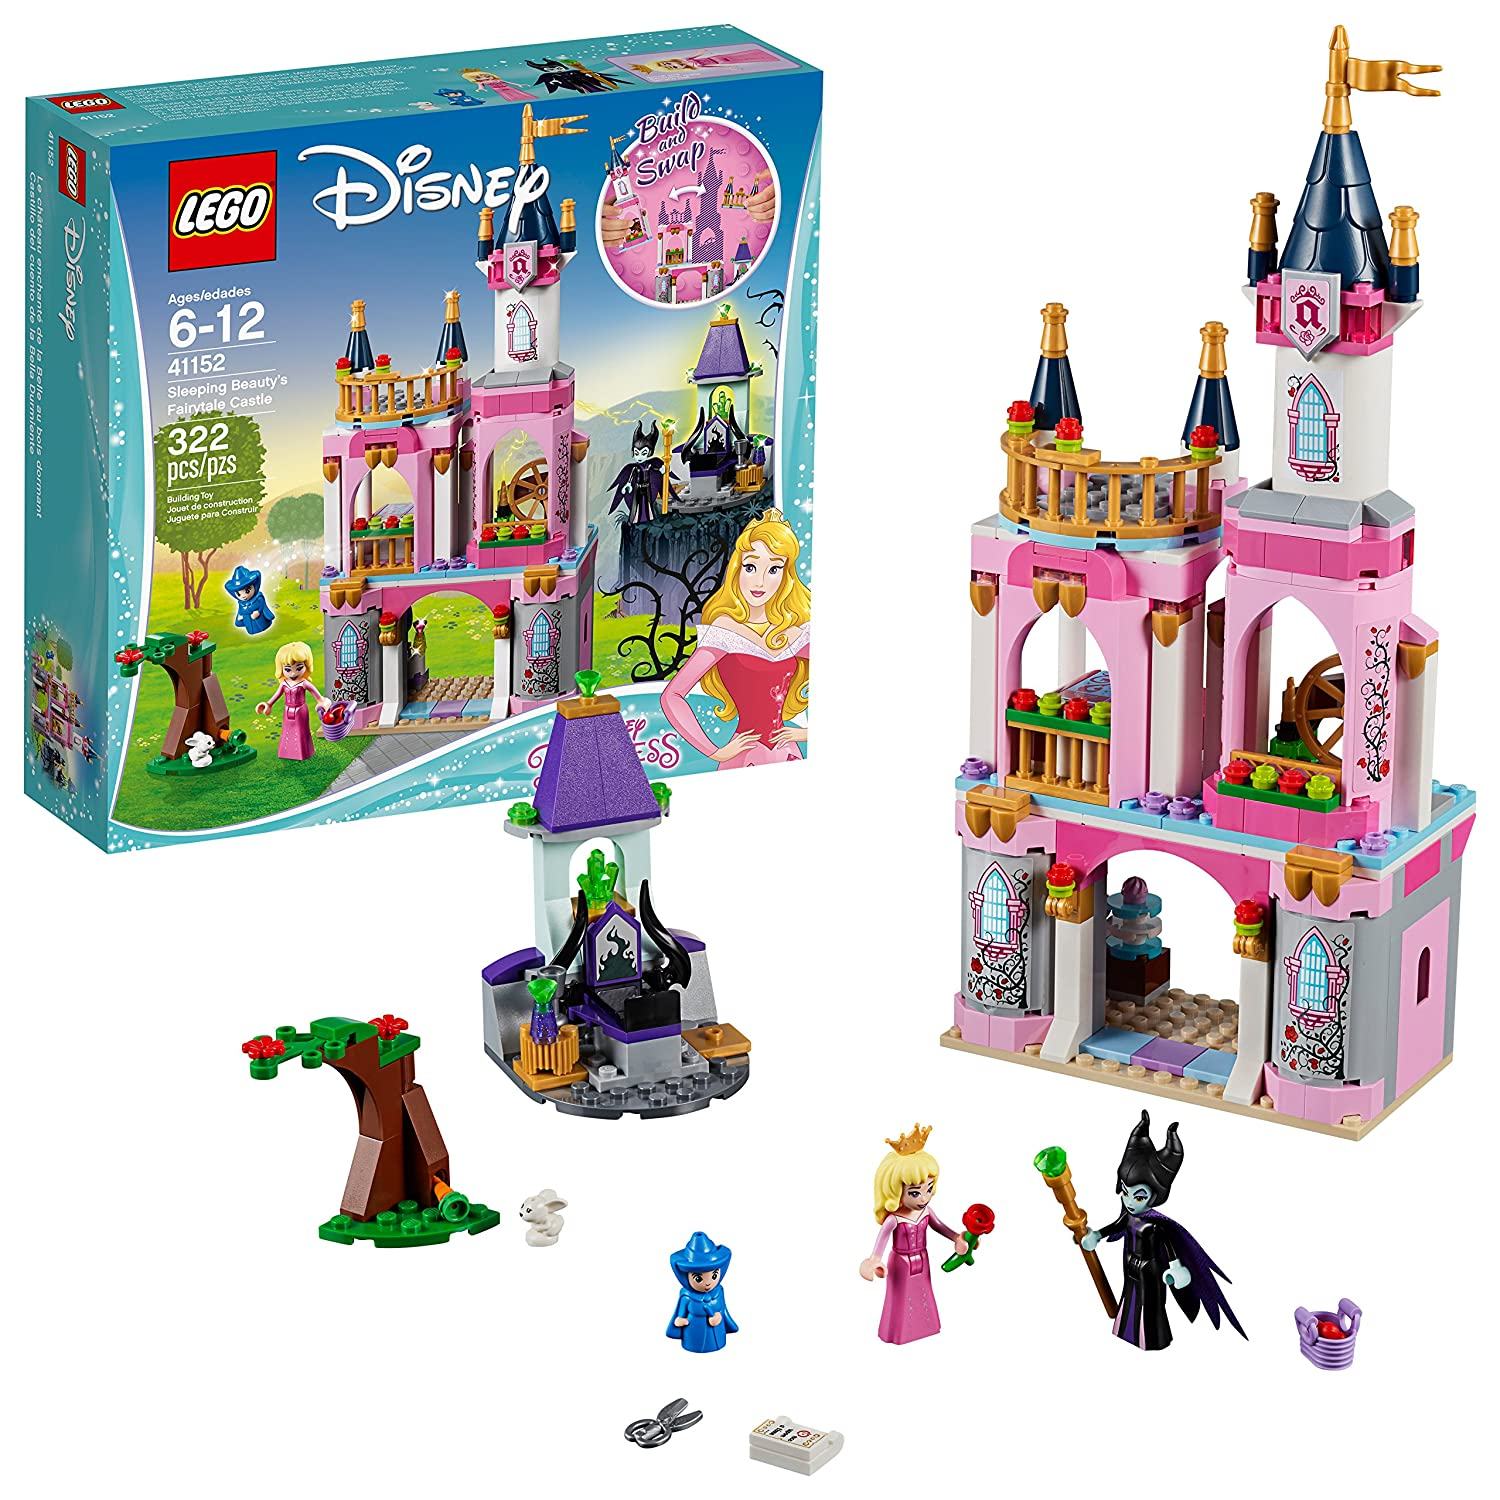 LEGO Disney Princess Sleeping Beauty's Fairytale Castle 41152 Building Kit